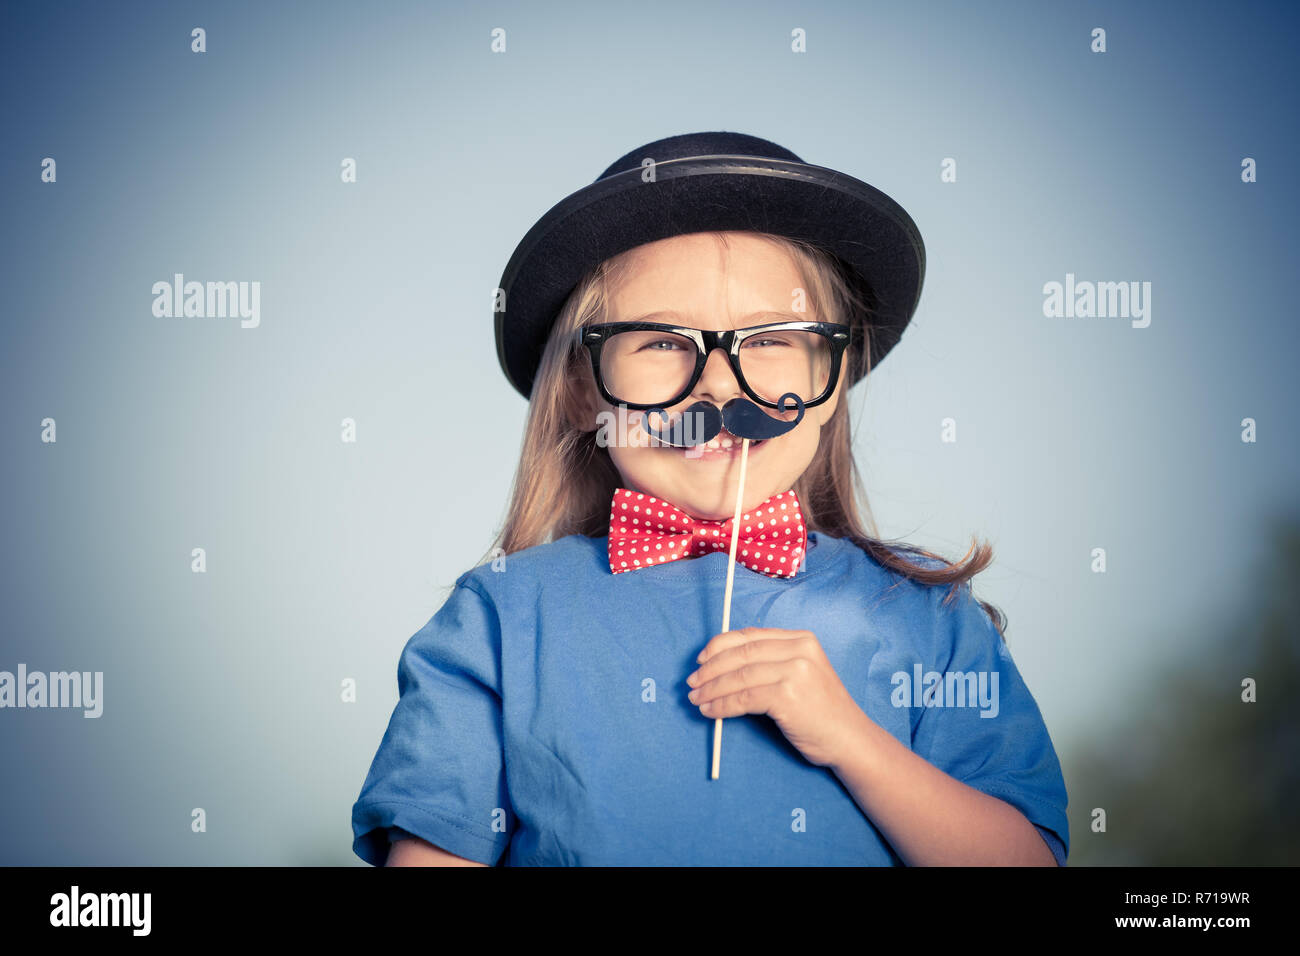 Funny happy little girl in bow tie and bowler hat. - Stock Image